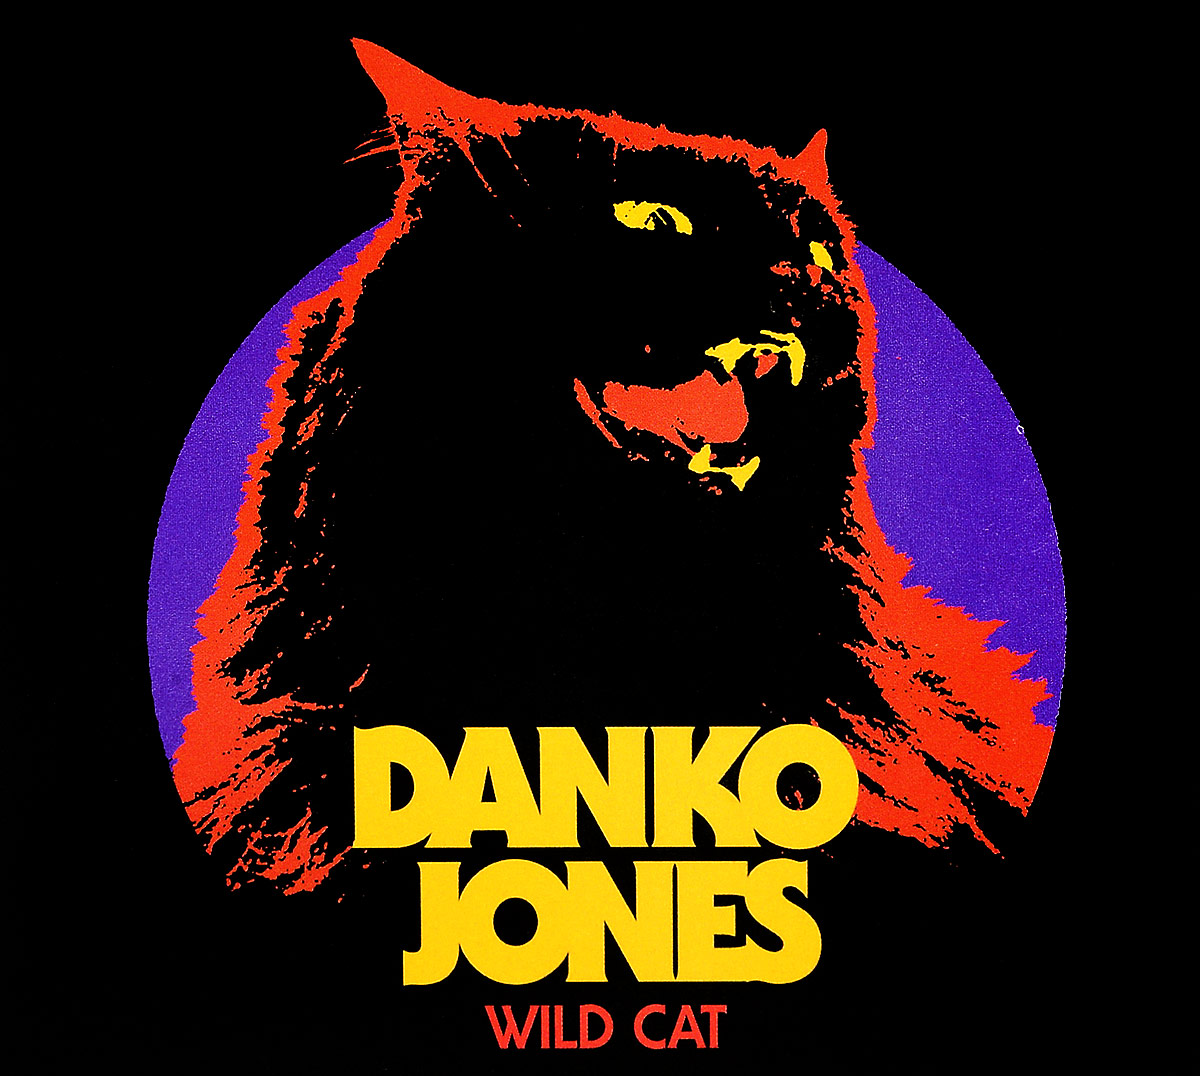 Danko Jones Danko Jones. Wild Cat цена 2017